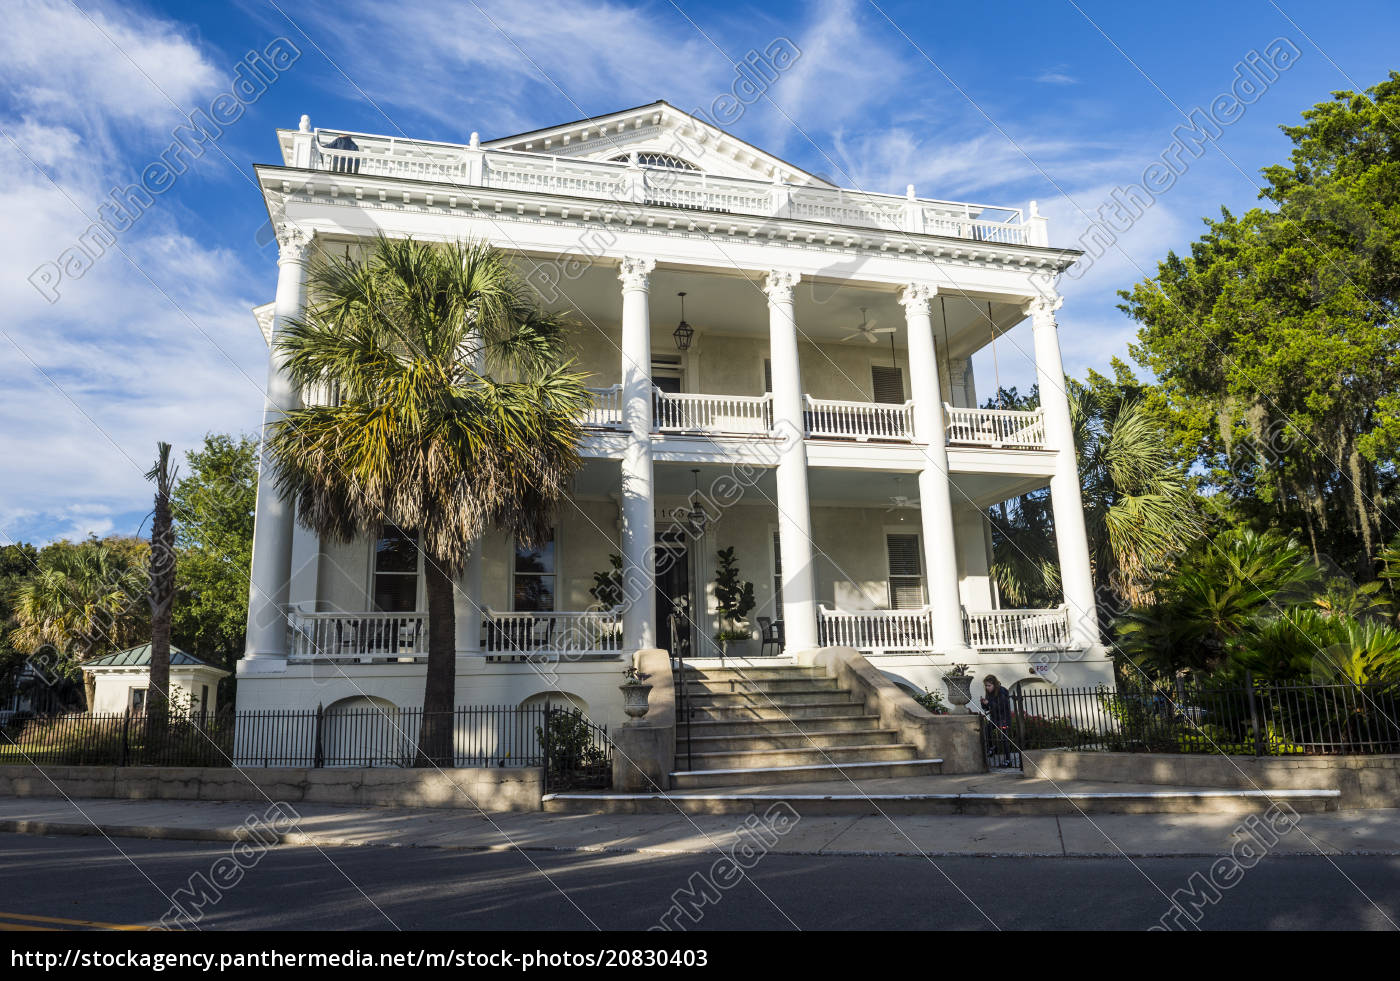 Historical house in beaufort south carolina united for Beaufort sc architects